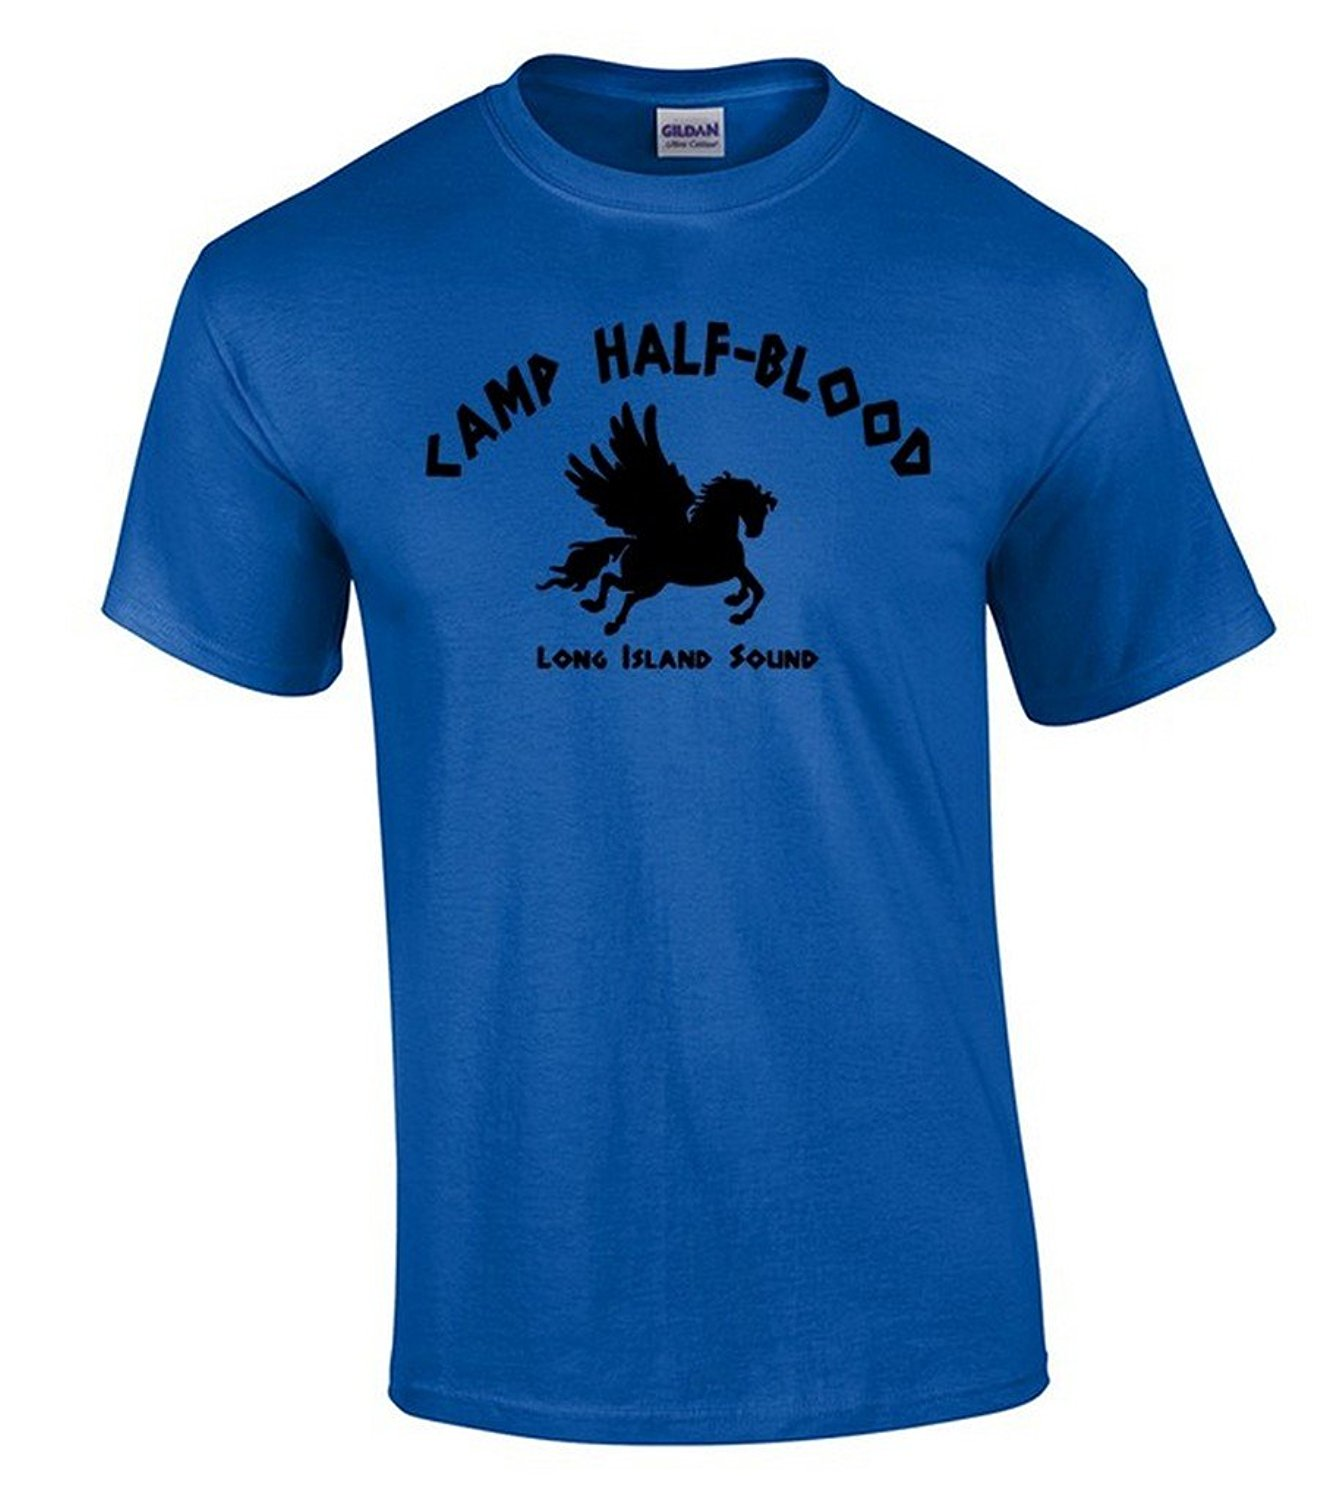 Design t shirt company - New Style Company Tee Shirts Camp Half Blood T